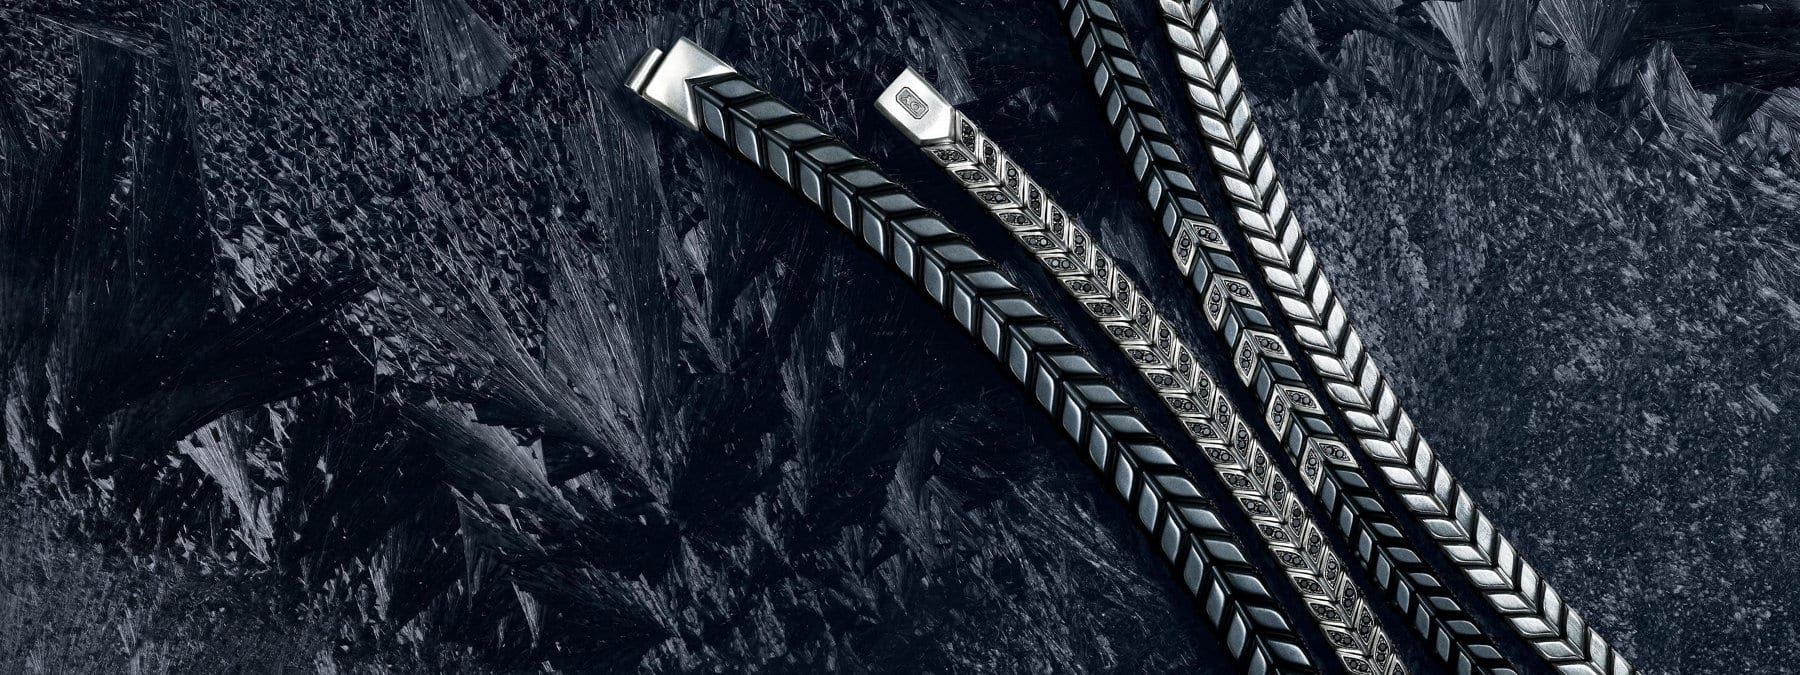 A color photograph shows a diagonal row of four David Yurman men's Chevron bracelets laying on top of a dark, icy surface dusted with snowflakes. The bracelets are crafted from black titanium with sterling silver, sterling silver with or without black diamonds and black titanium with sterling silver and black diamonds.